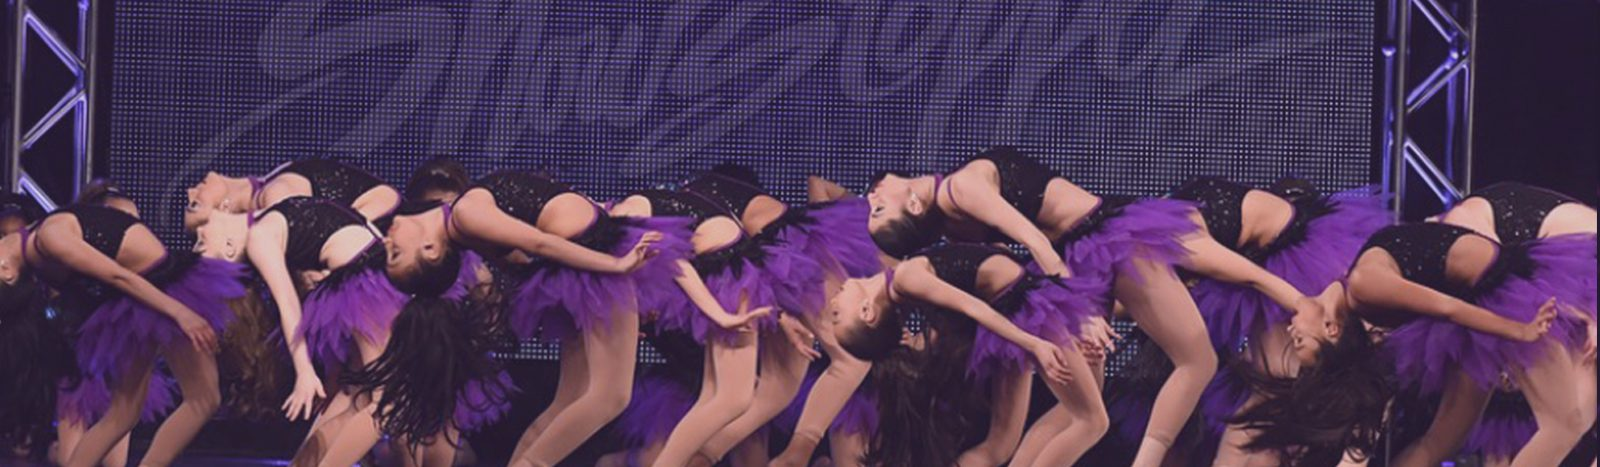 girls in purple dancing on stage at showstopper dance competition